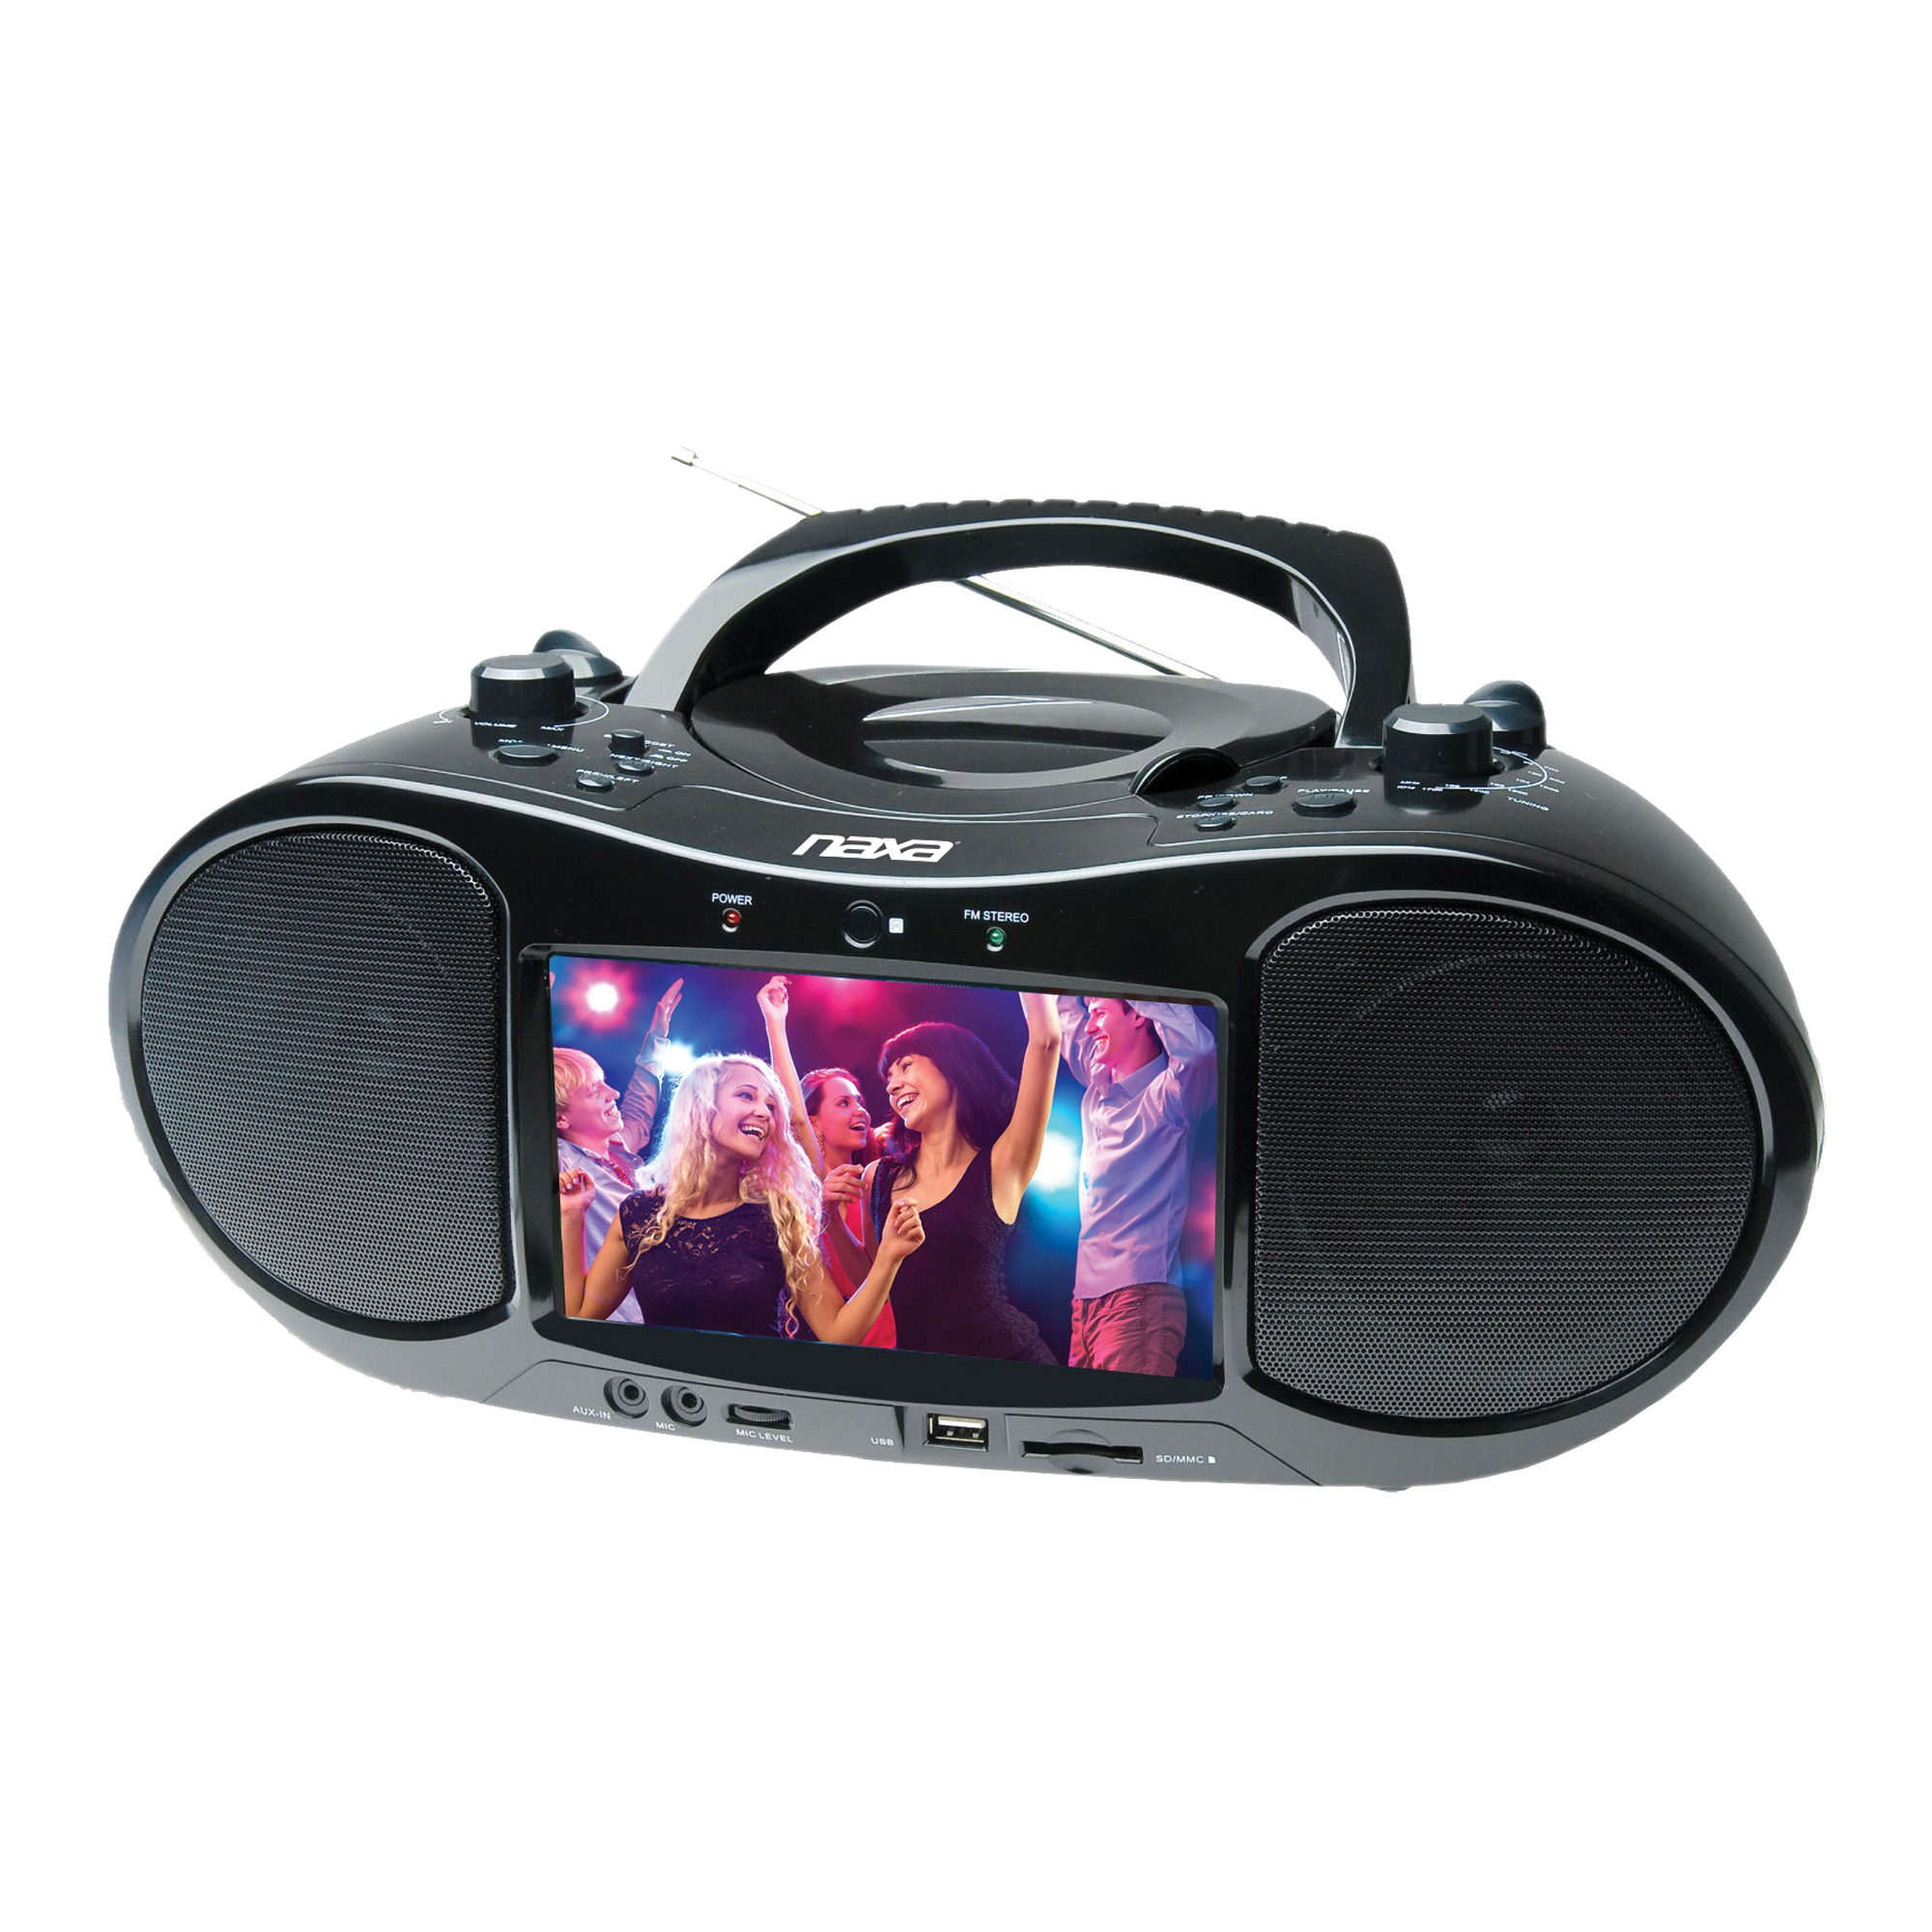 Naxa Bluetooth DVD/CD/MP3 Boombox and TV with 7 inch LCD